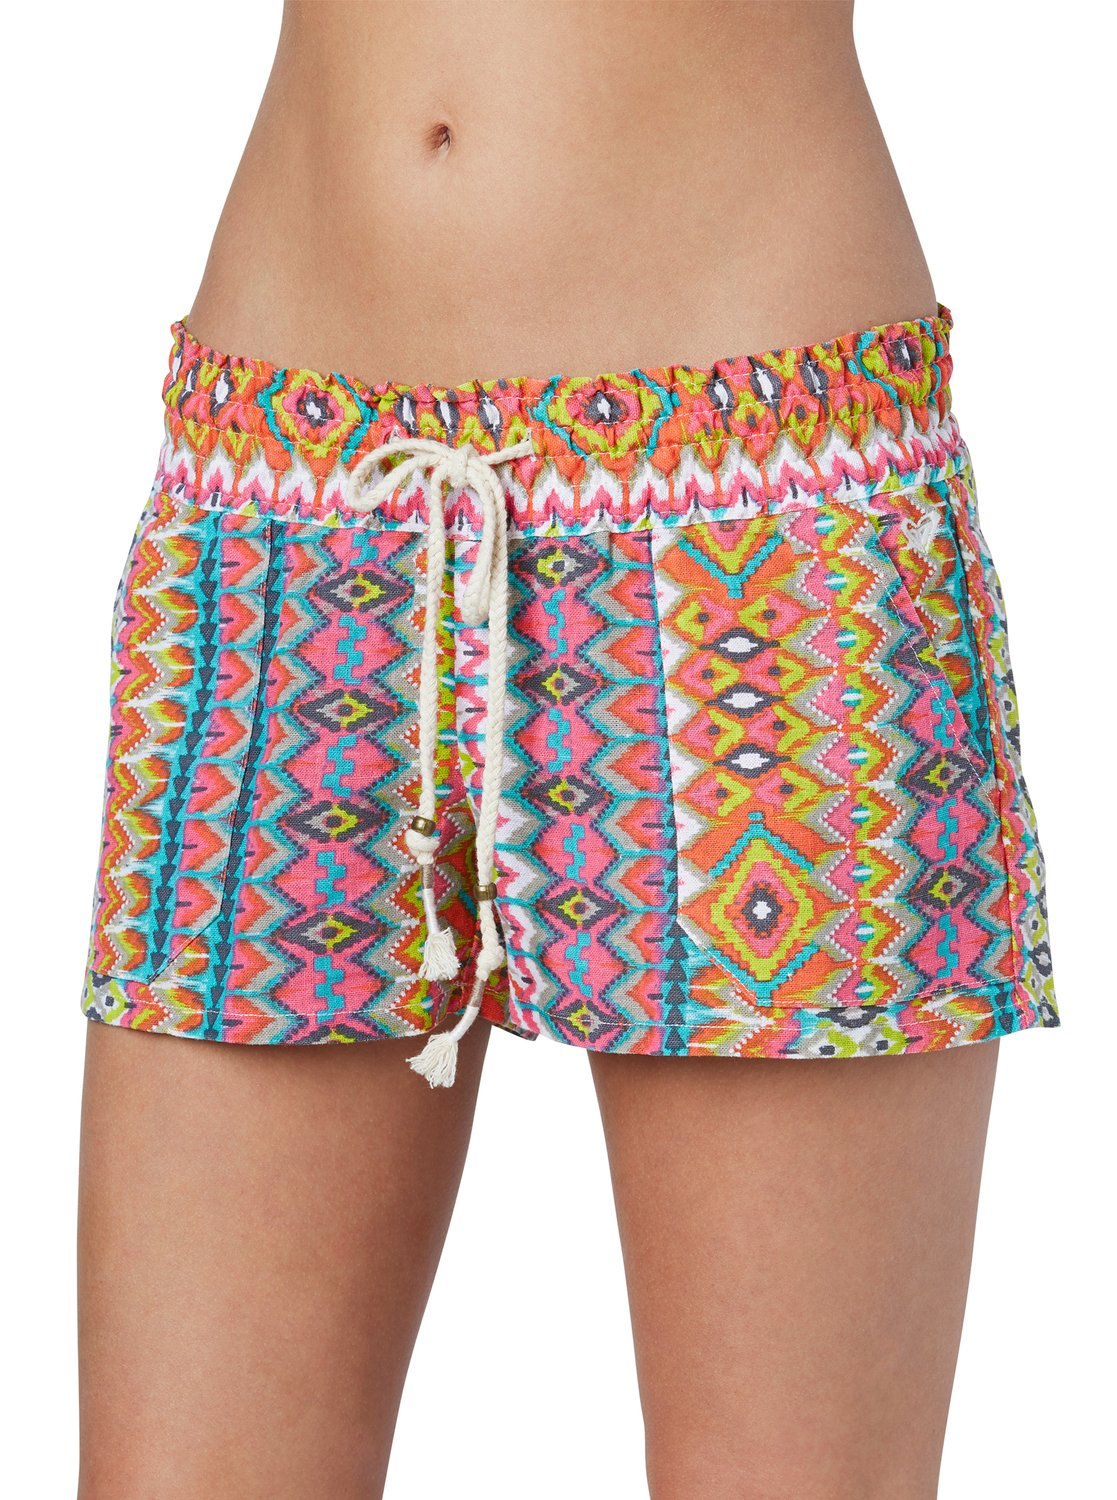 Shorts Prints, The I Want All! [The 50 Sweethearts of Summer]